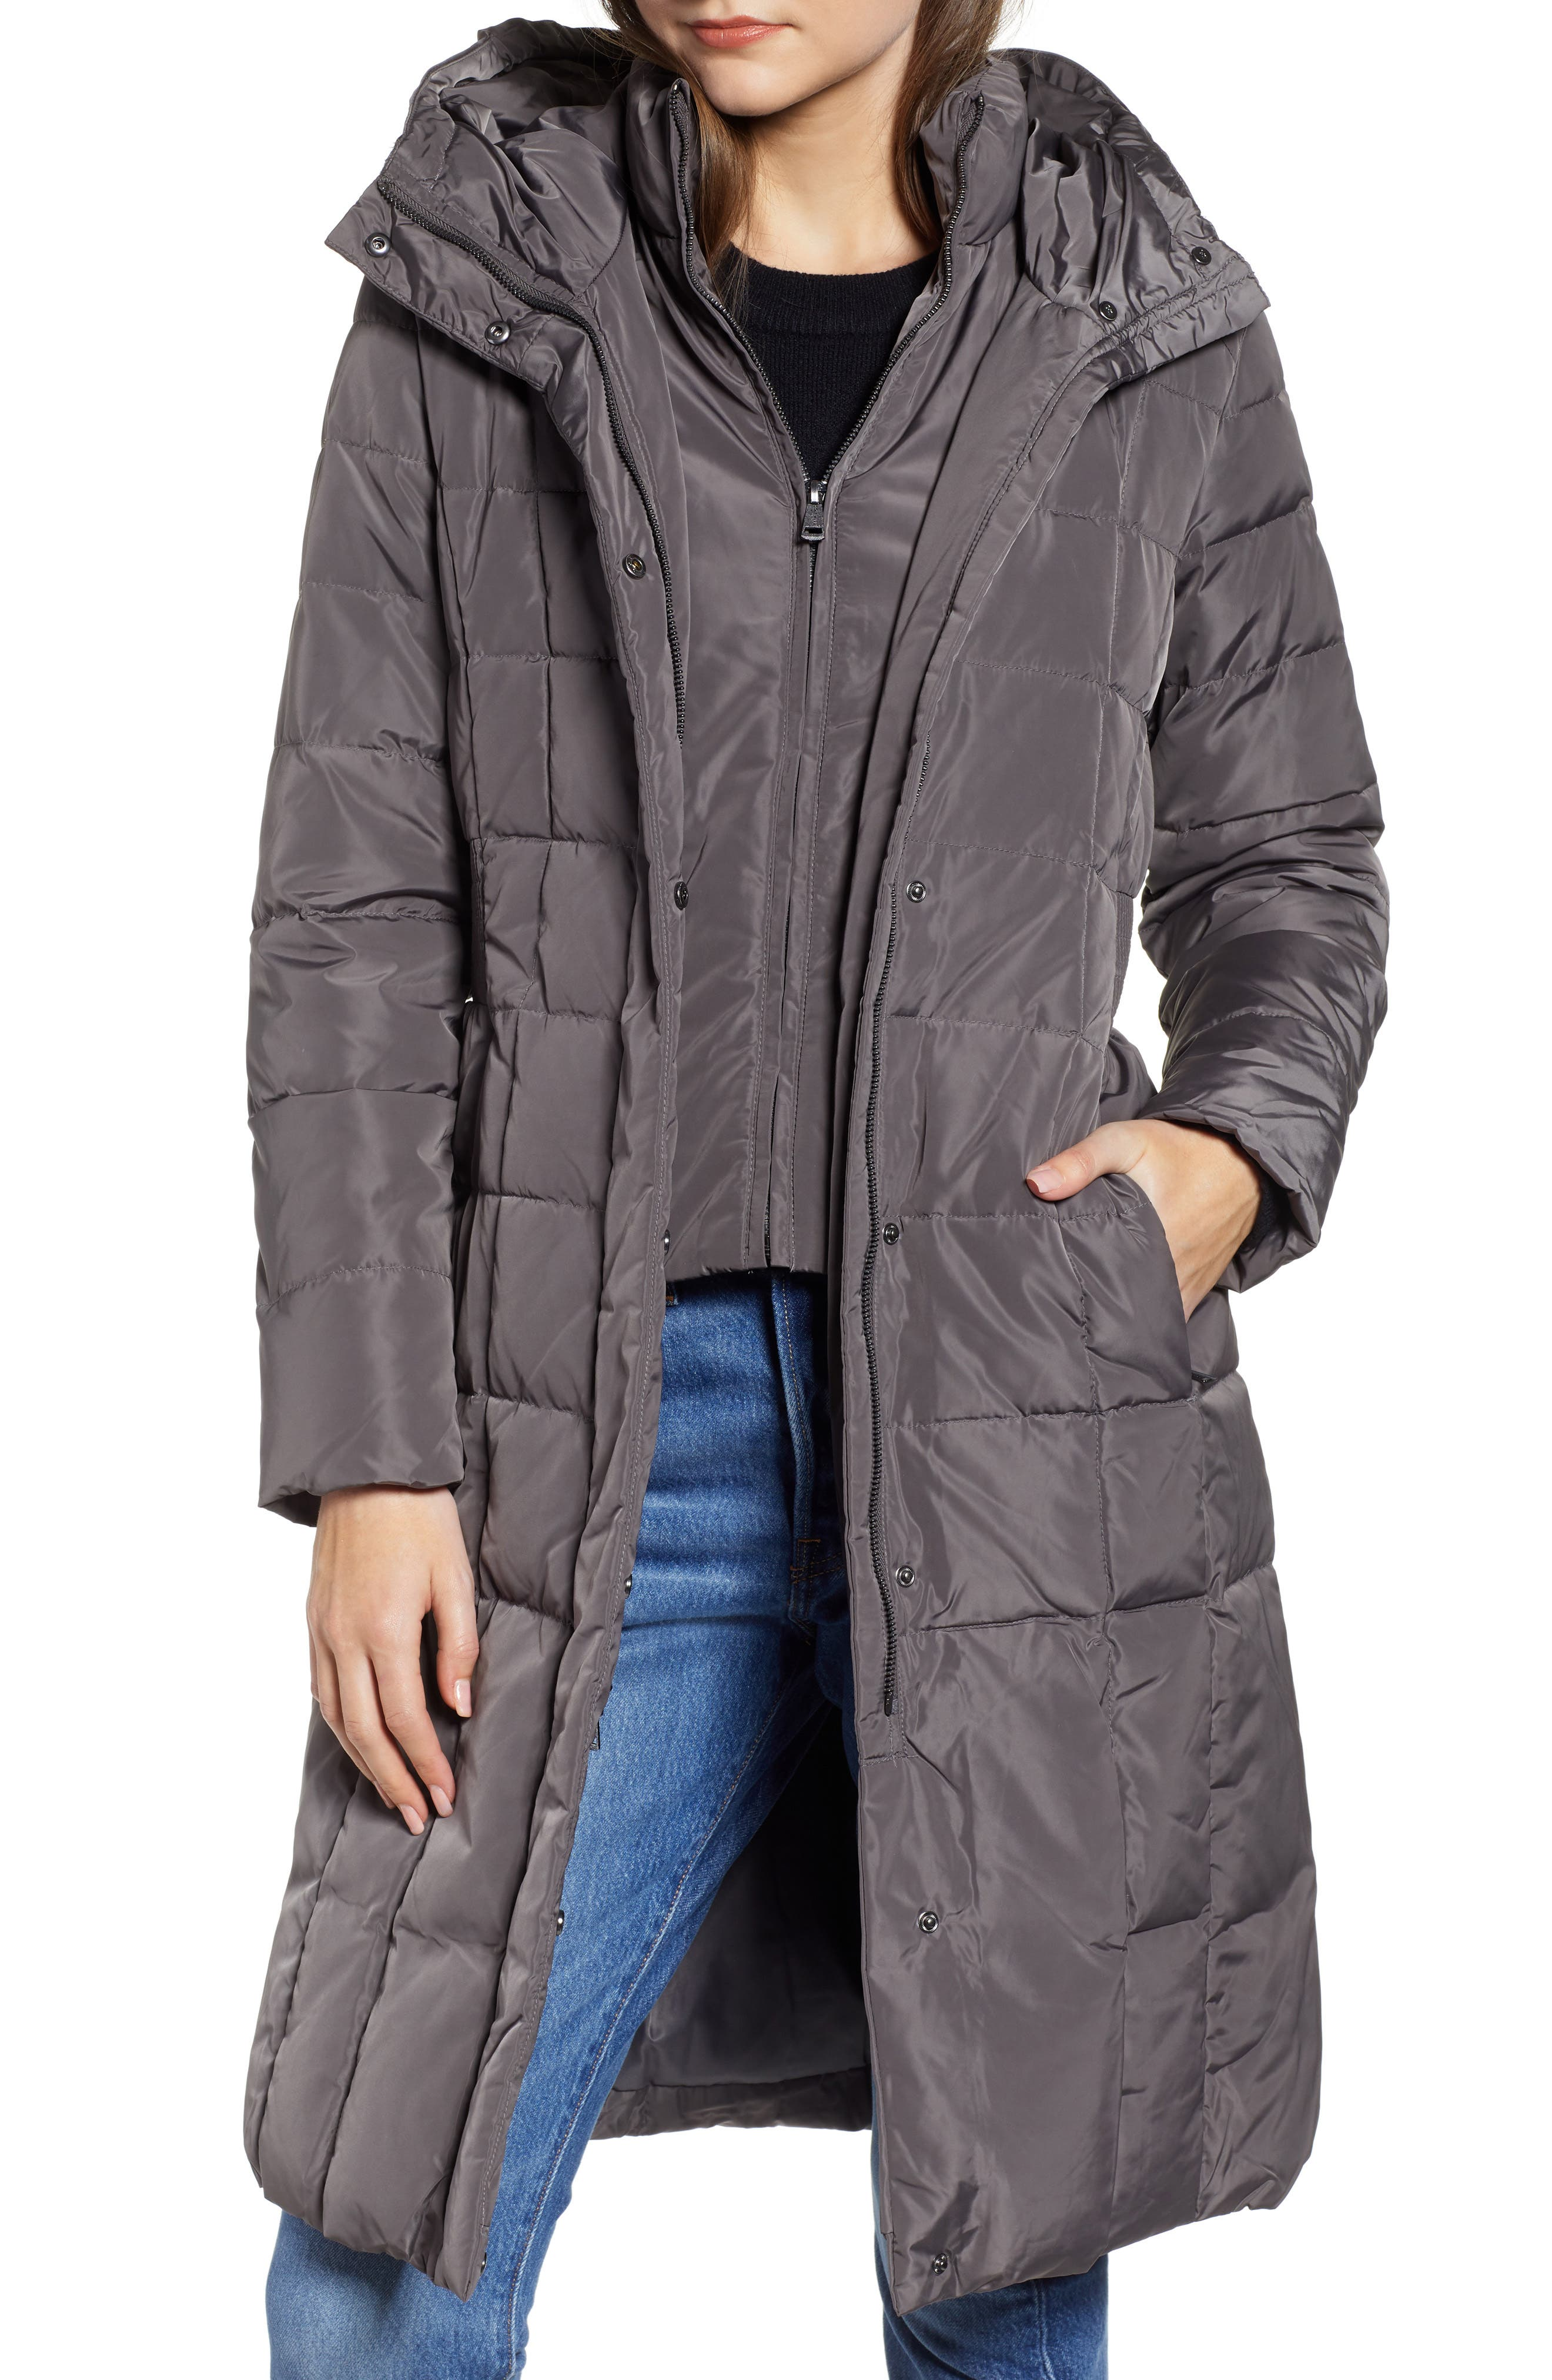 COLE HAAN SIGNATURE Cole Haan Bib Insert Down & Feather Fill Coat, Main, color, 024